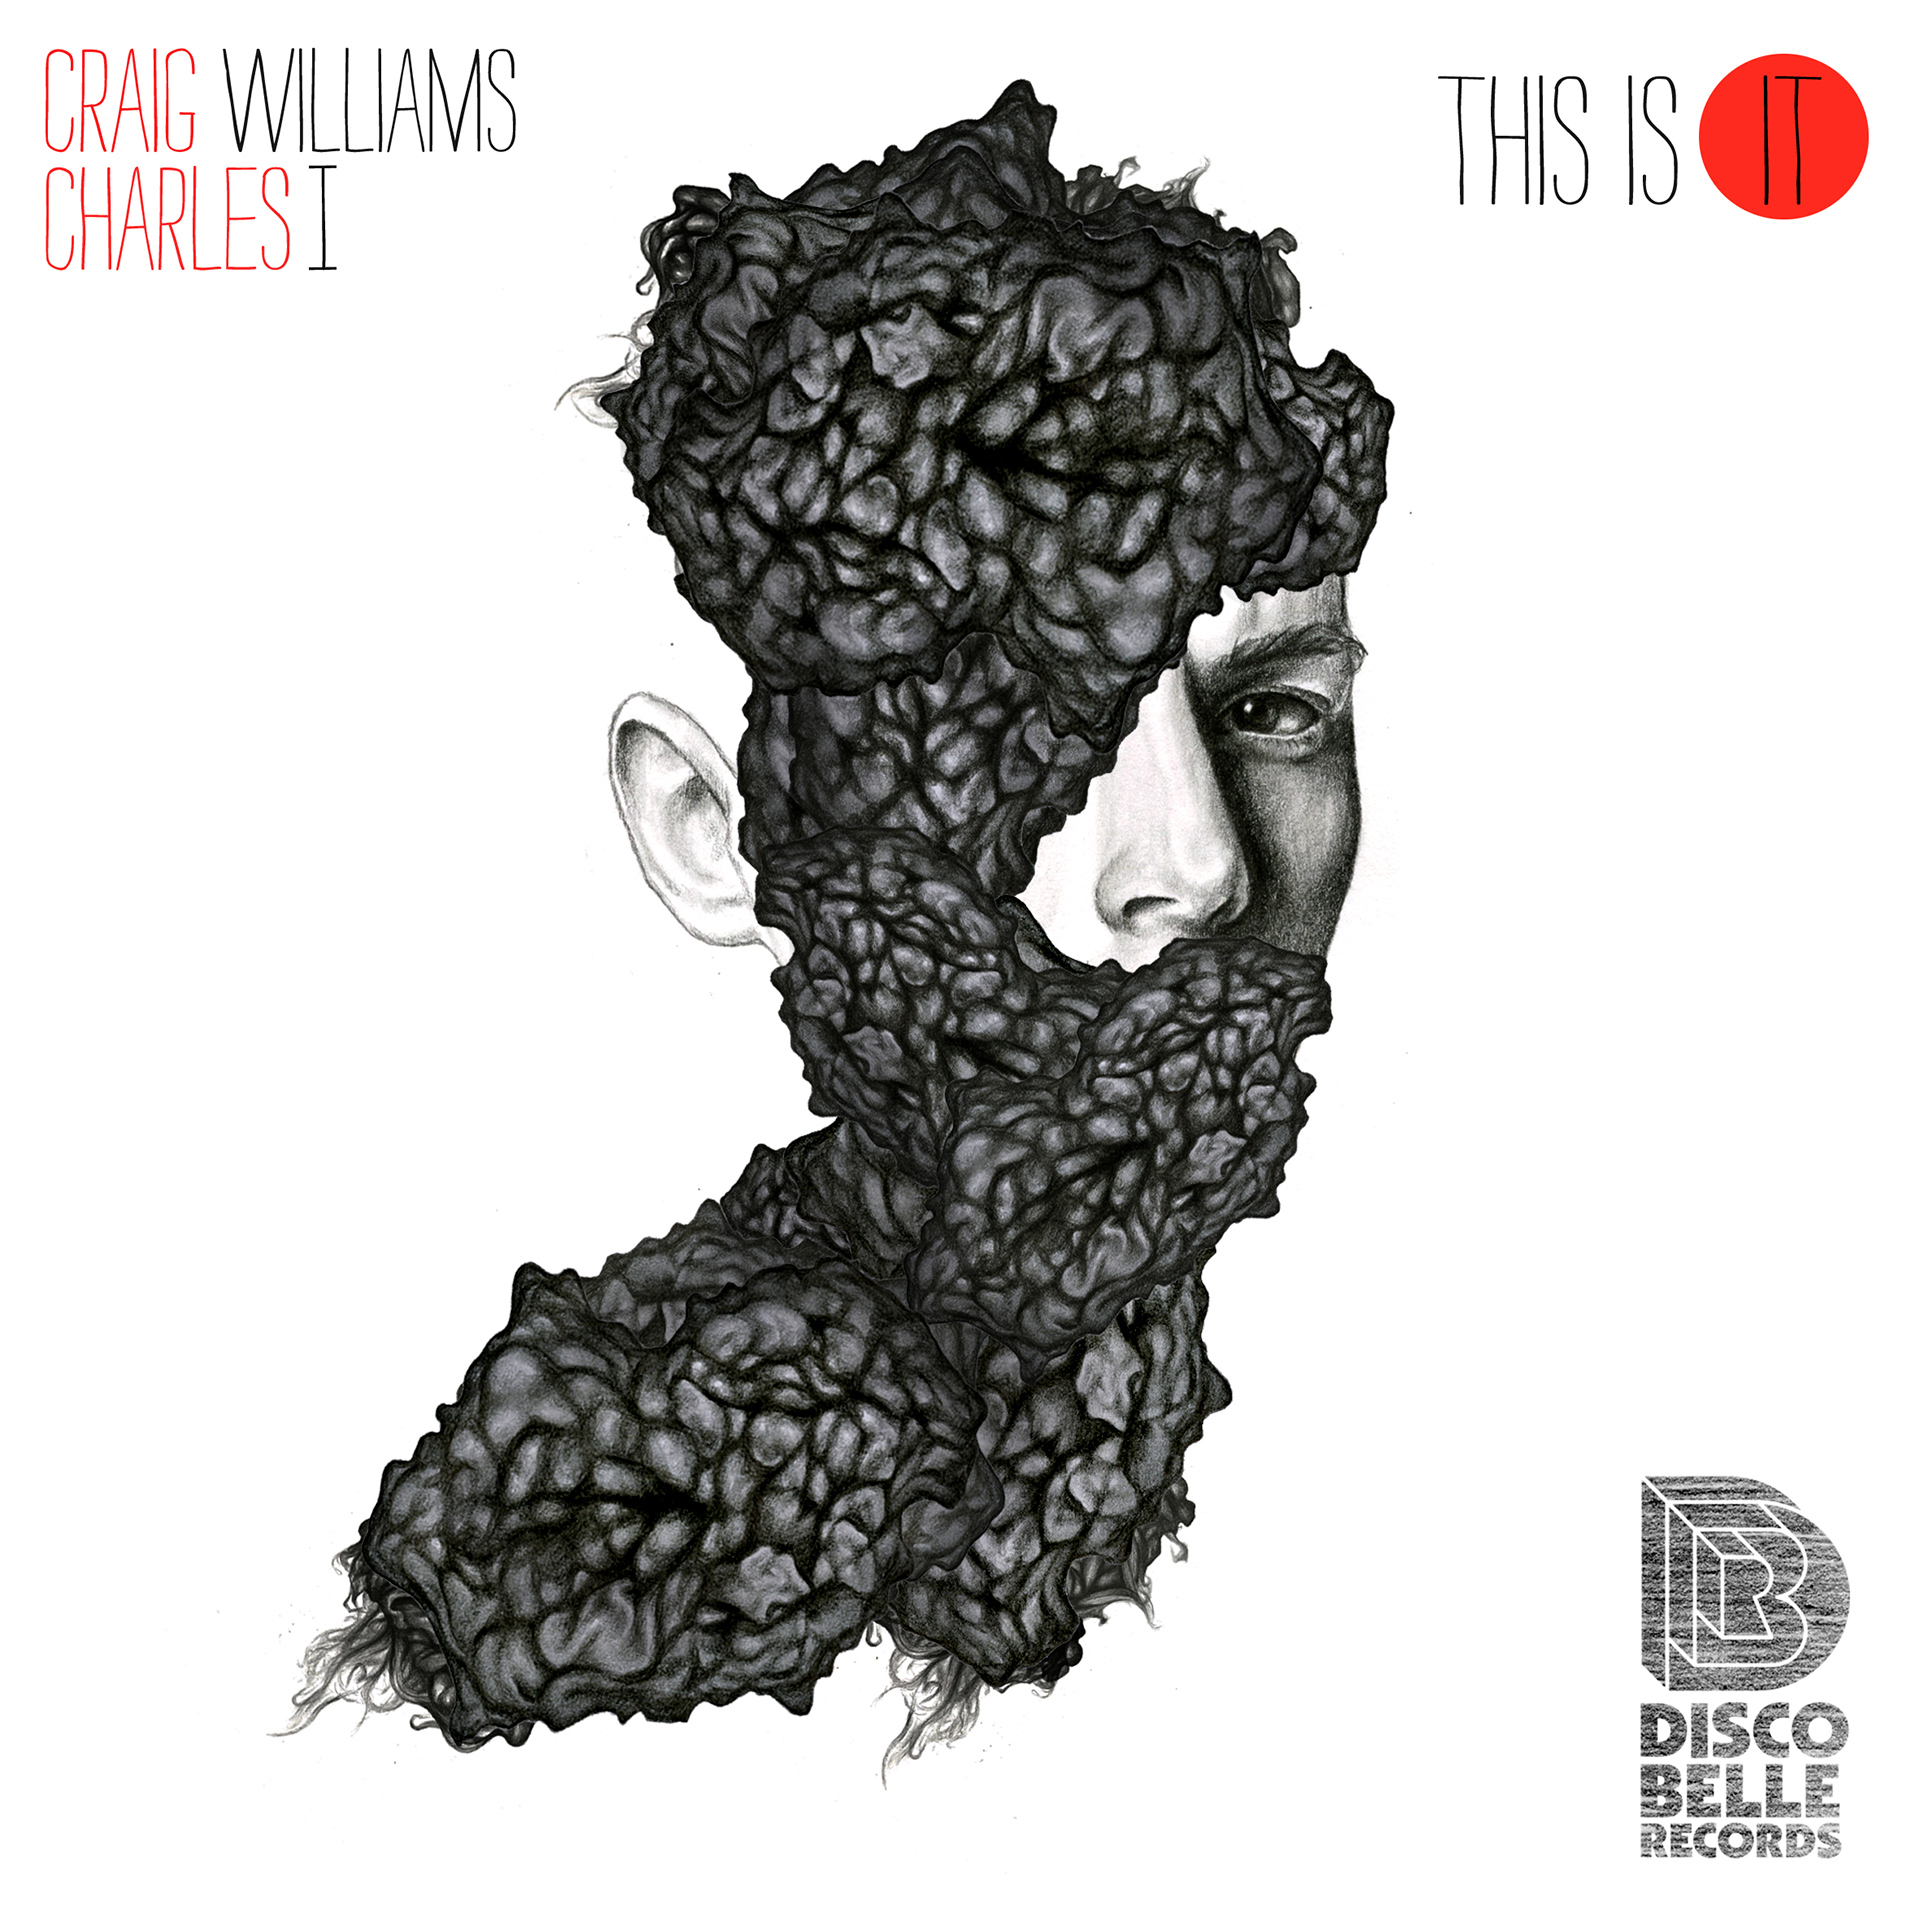 Julia Szulc Illustration. Album cover Craig Williams and Charles 1.